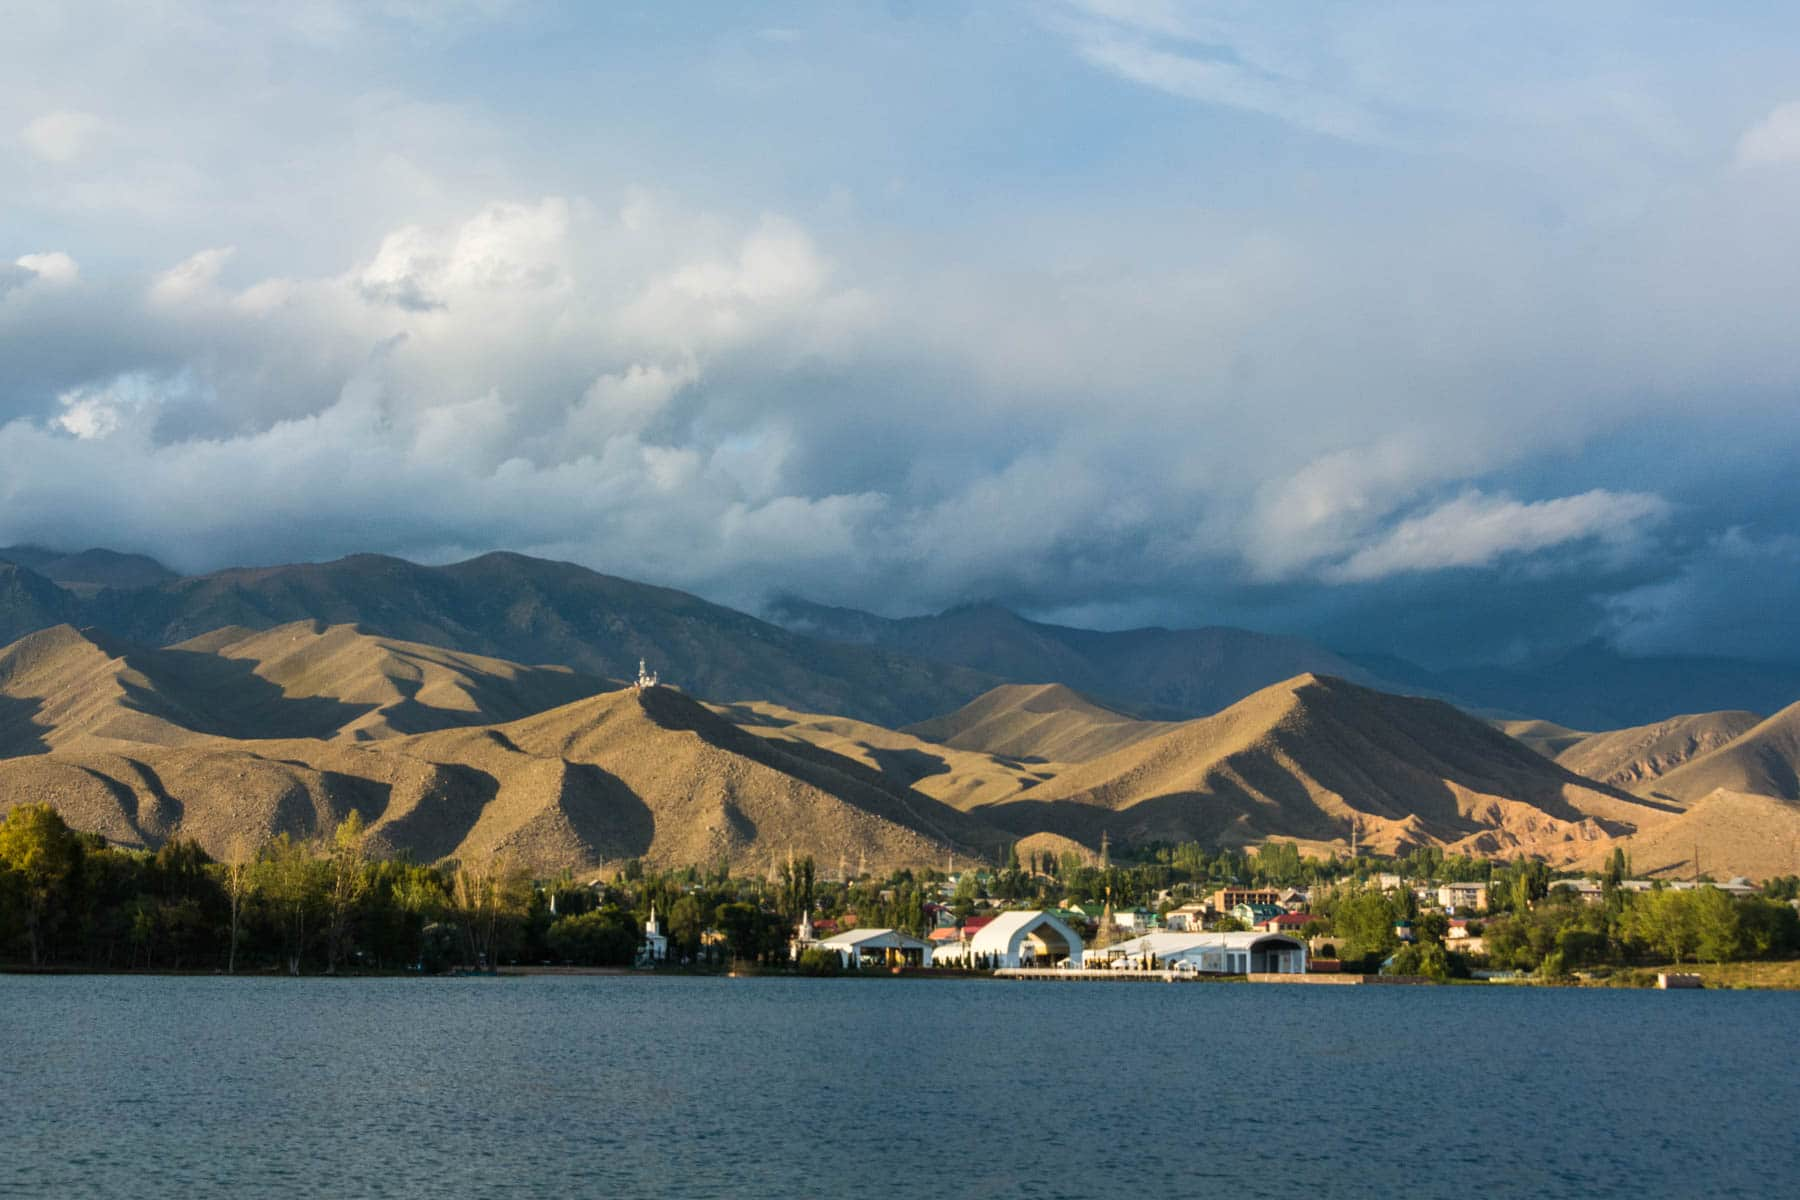 Lake Issyk Kul - Are the 2018 World Nomad Games worth the trip? - Lost With Purpose